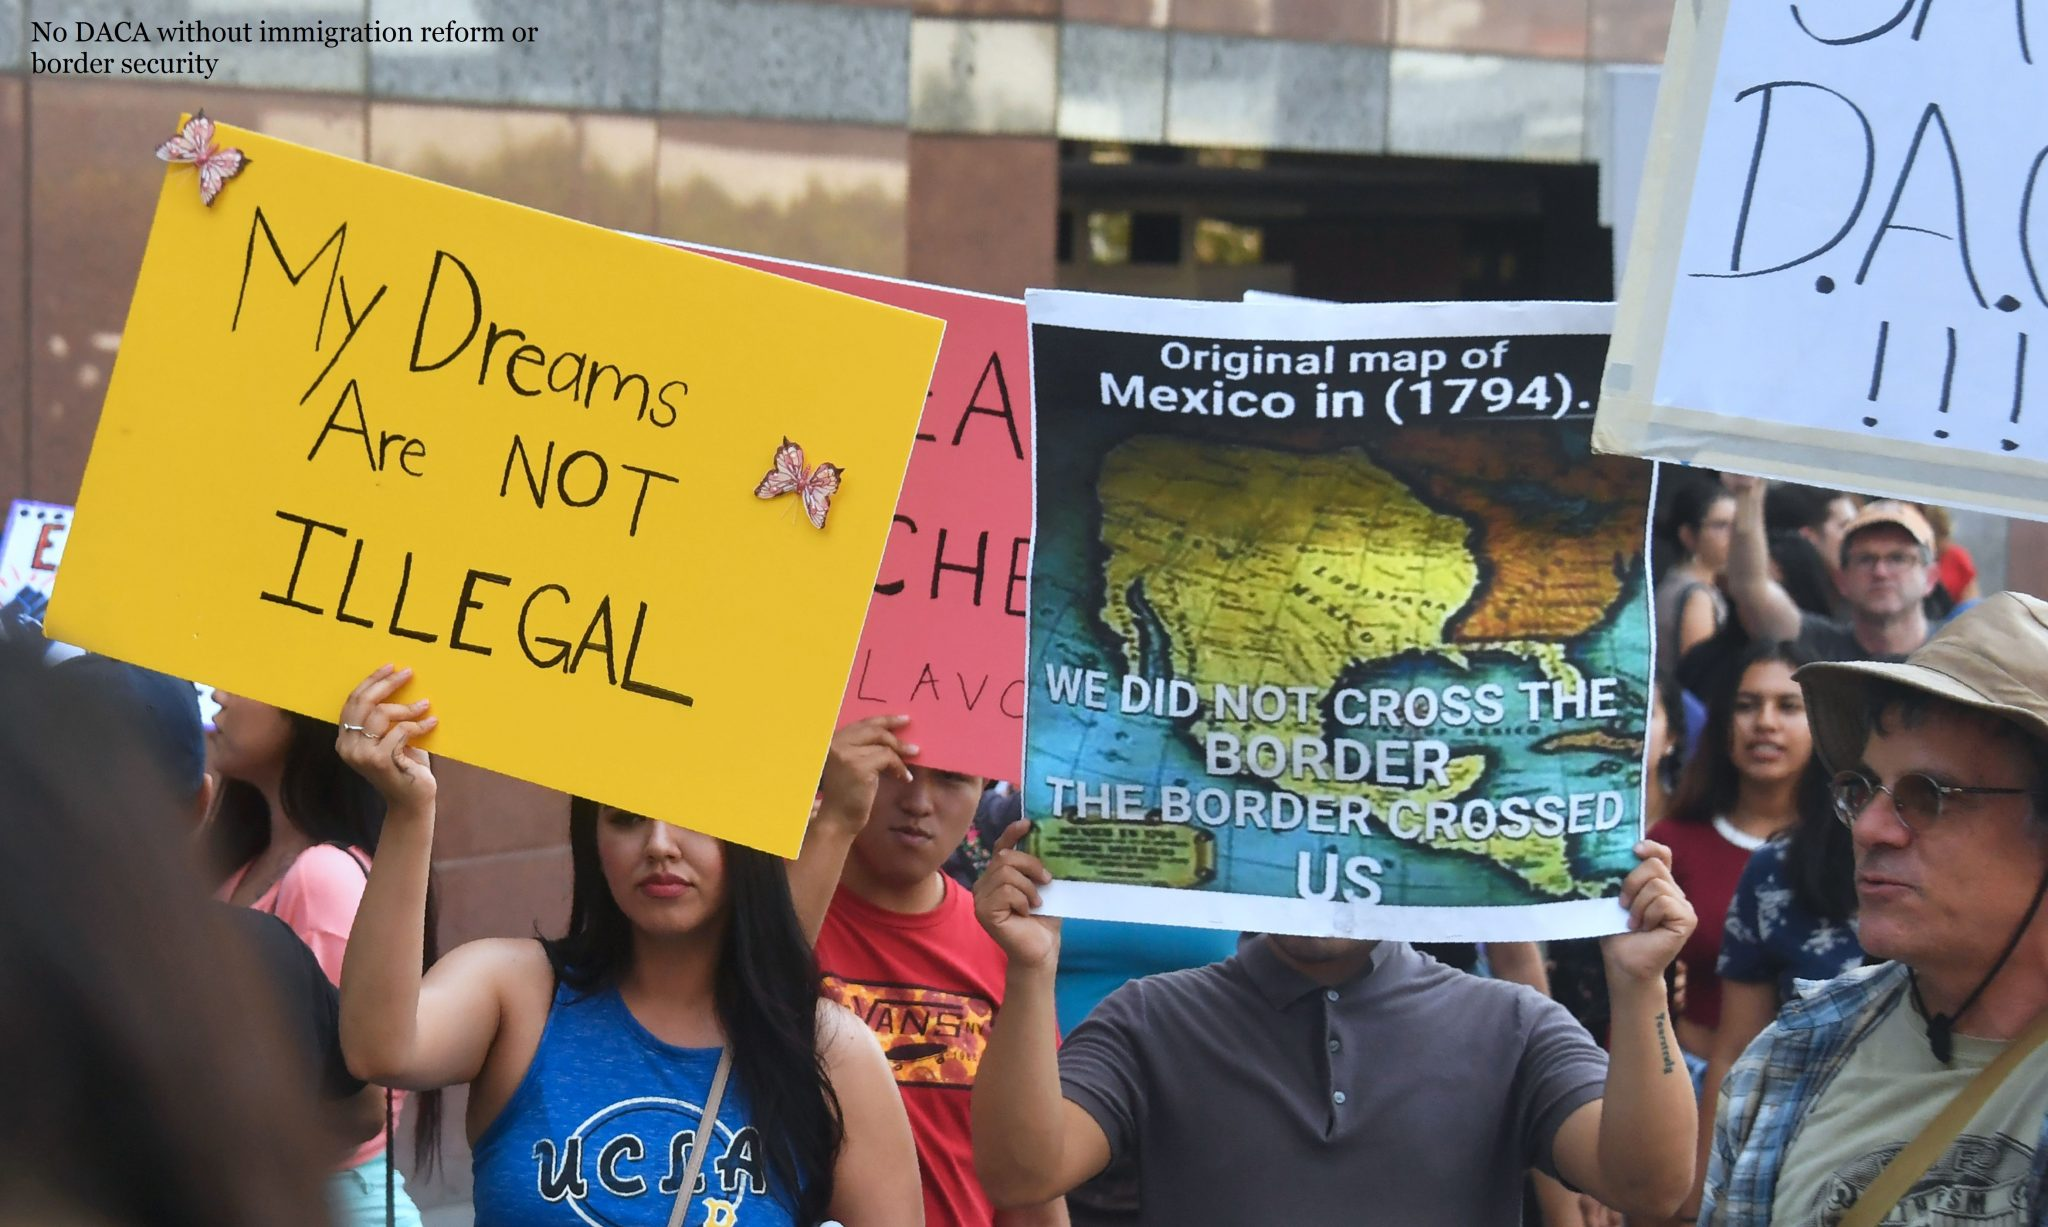 A map of Mexico as it was in 1794 is displayed as young immigrants and their supporters rally in support of Deferred Action for Childhood Arrivals (DACA) in Los Angeles, California on September 1, 2017. A decision is expected in coming days on whether US President Trump will end the program by his predecessor, former President Obama, on DACA which has protected some 800,000 undocumented immigrants, also known as Dreamers, since 2012. / AFP PHOTO / FREDERIC J. BROWN        (Photo credit should read FREDERIC J. BROWN/AFP/Getty Images)